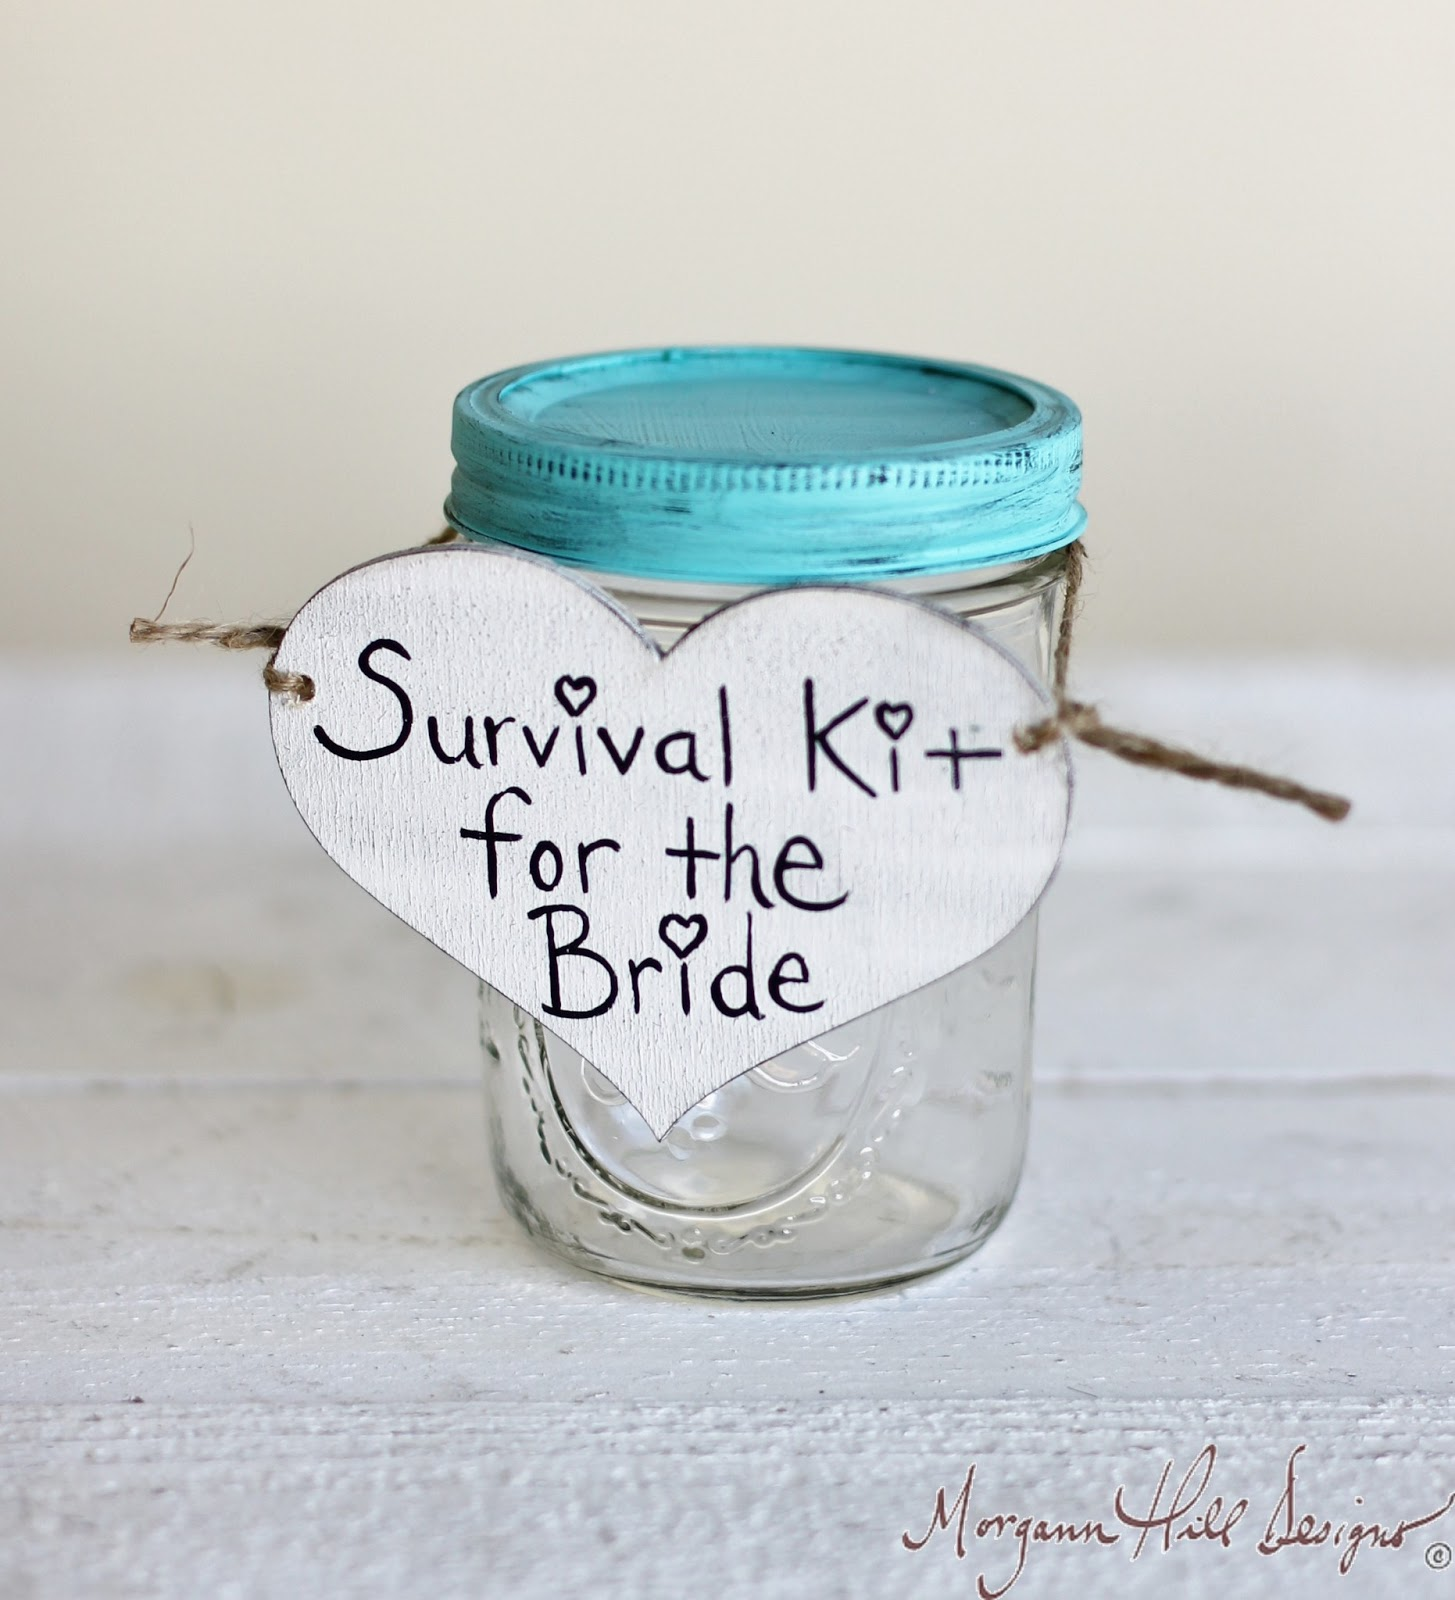 How Much Should A Bridesmaid Spend On A Bridal Shower Gift